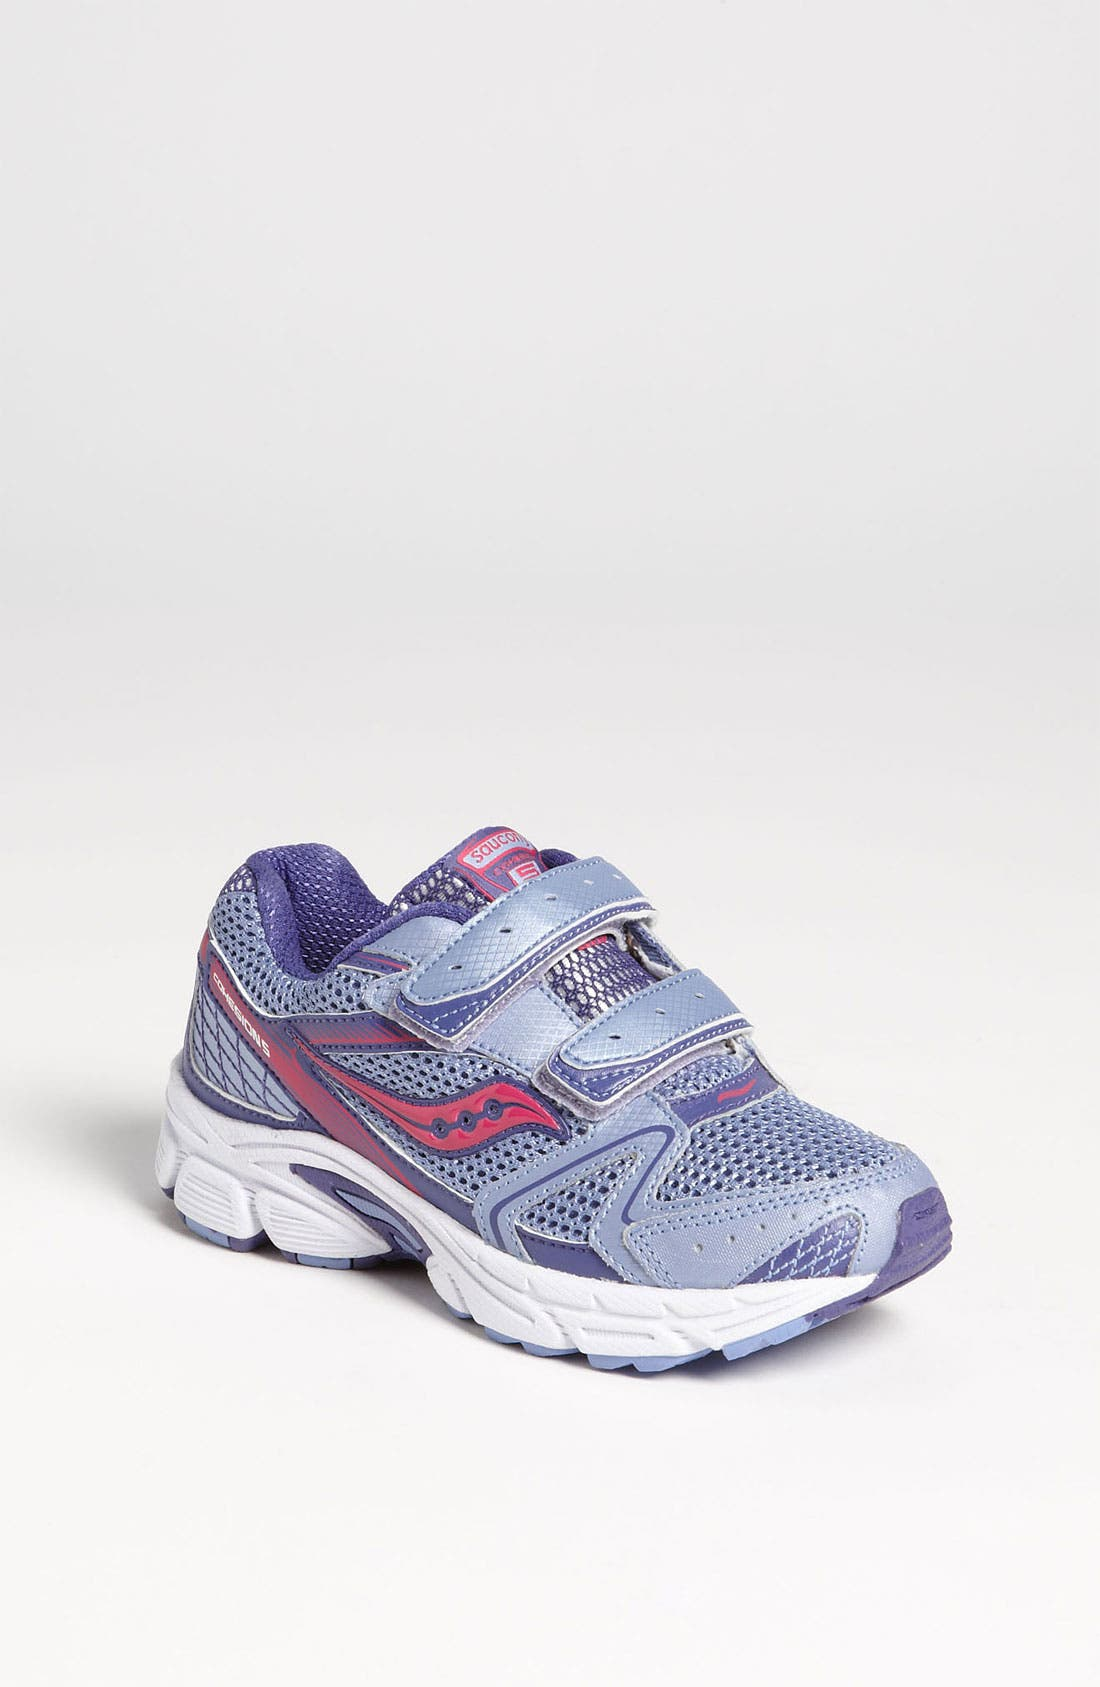 Alternate Image 1 Selected - Saucony 'Cohesion HL' Running Shoe (Toddler, Little Kid & Big Kid)